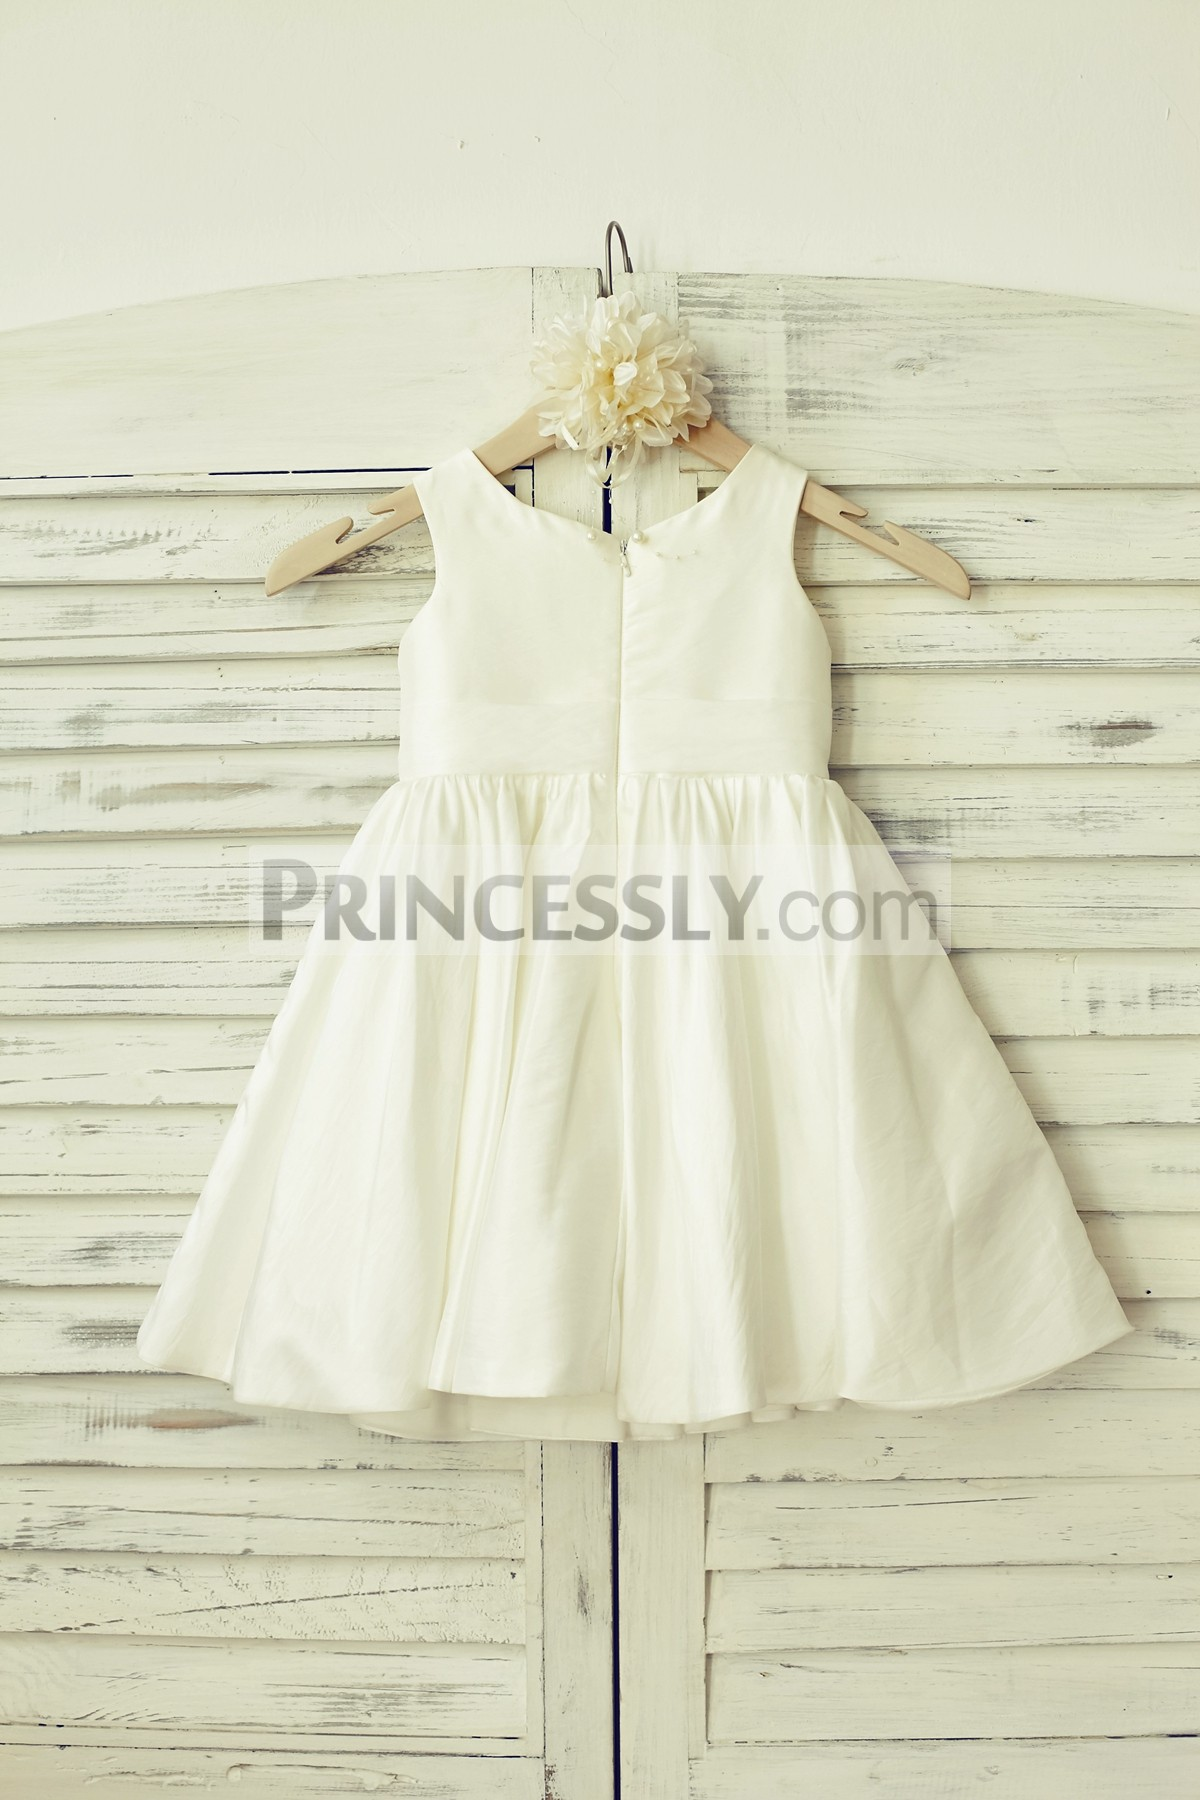 Taffeta ivory wedding baby girl dress